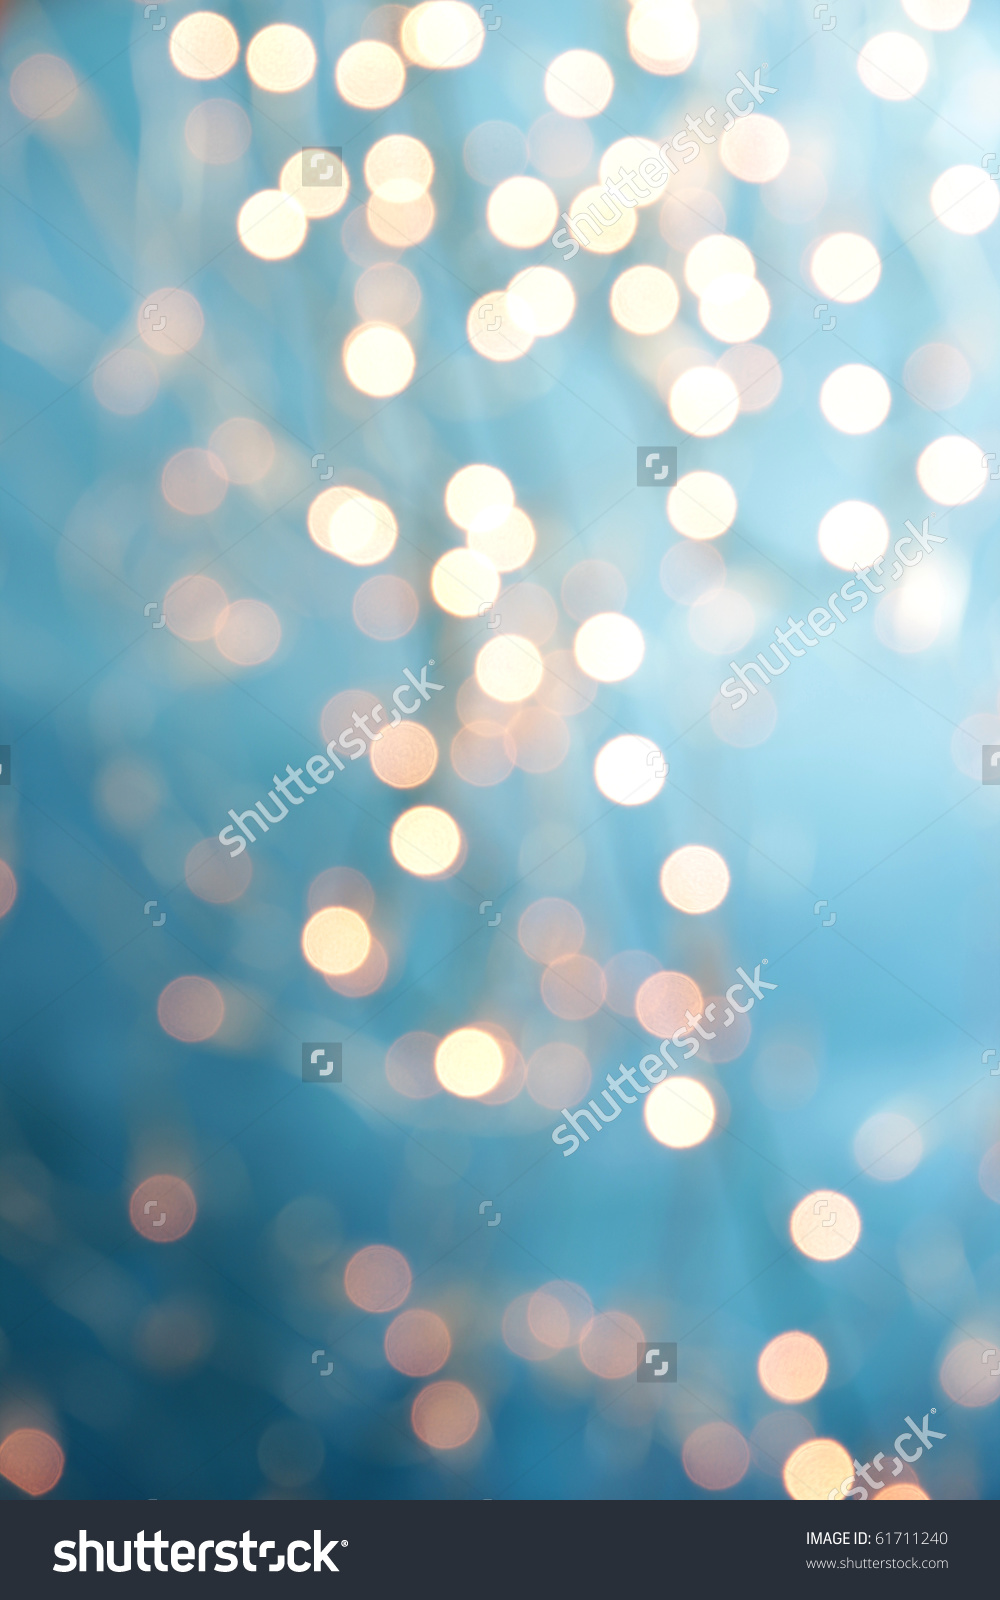 Shimmering Blur Background Shining Lights Stock Photo 61711240.